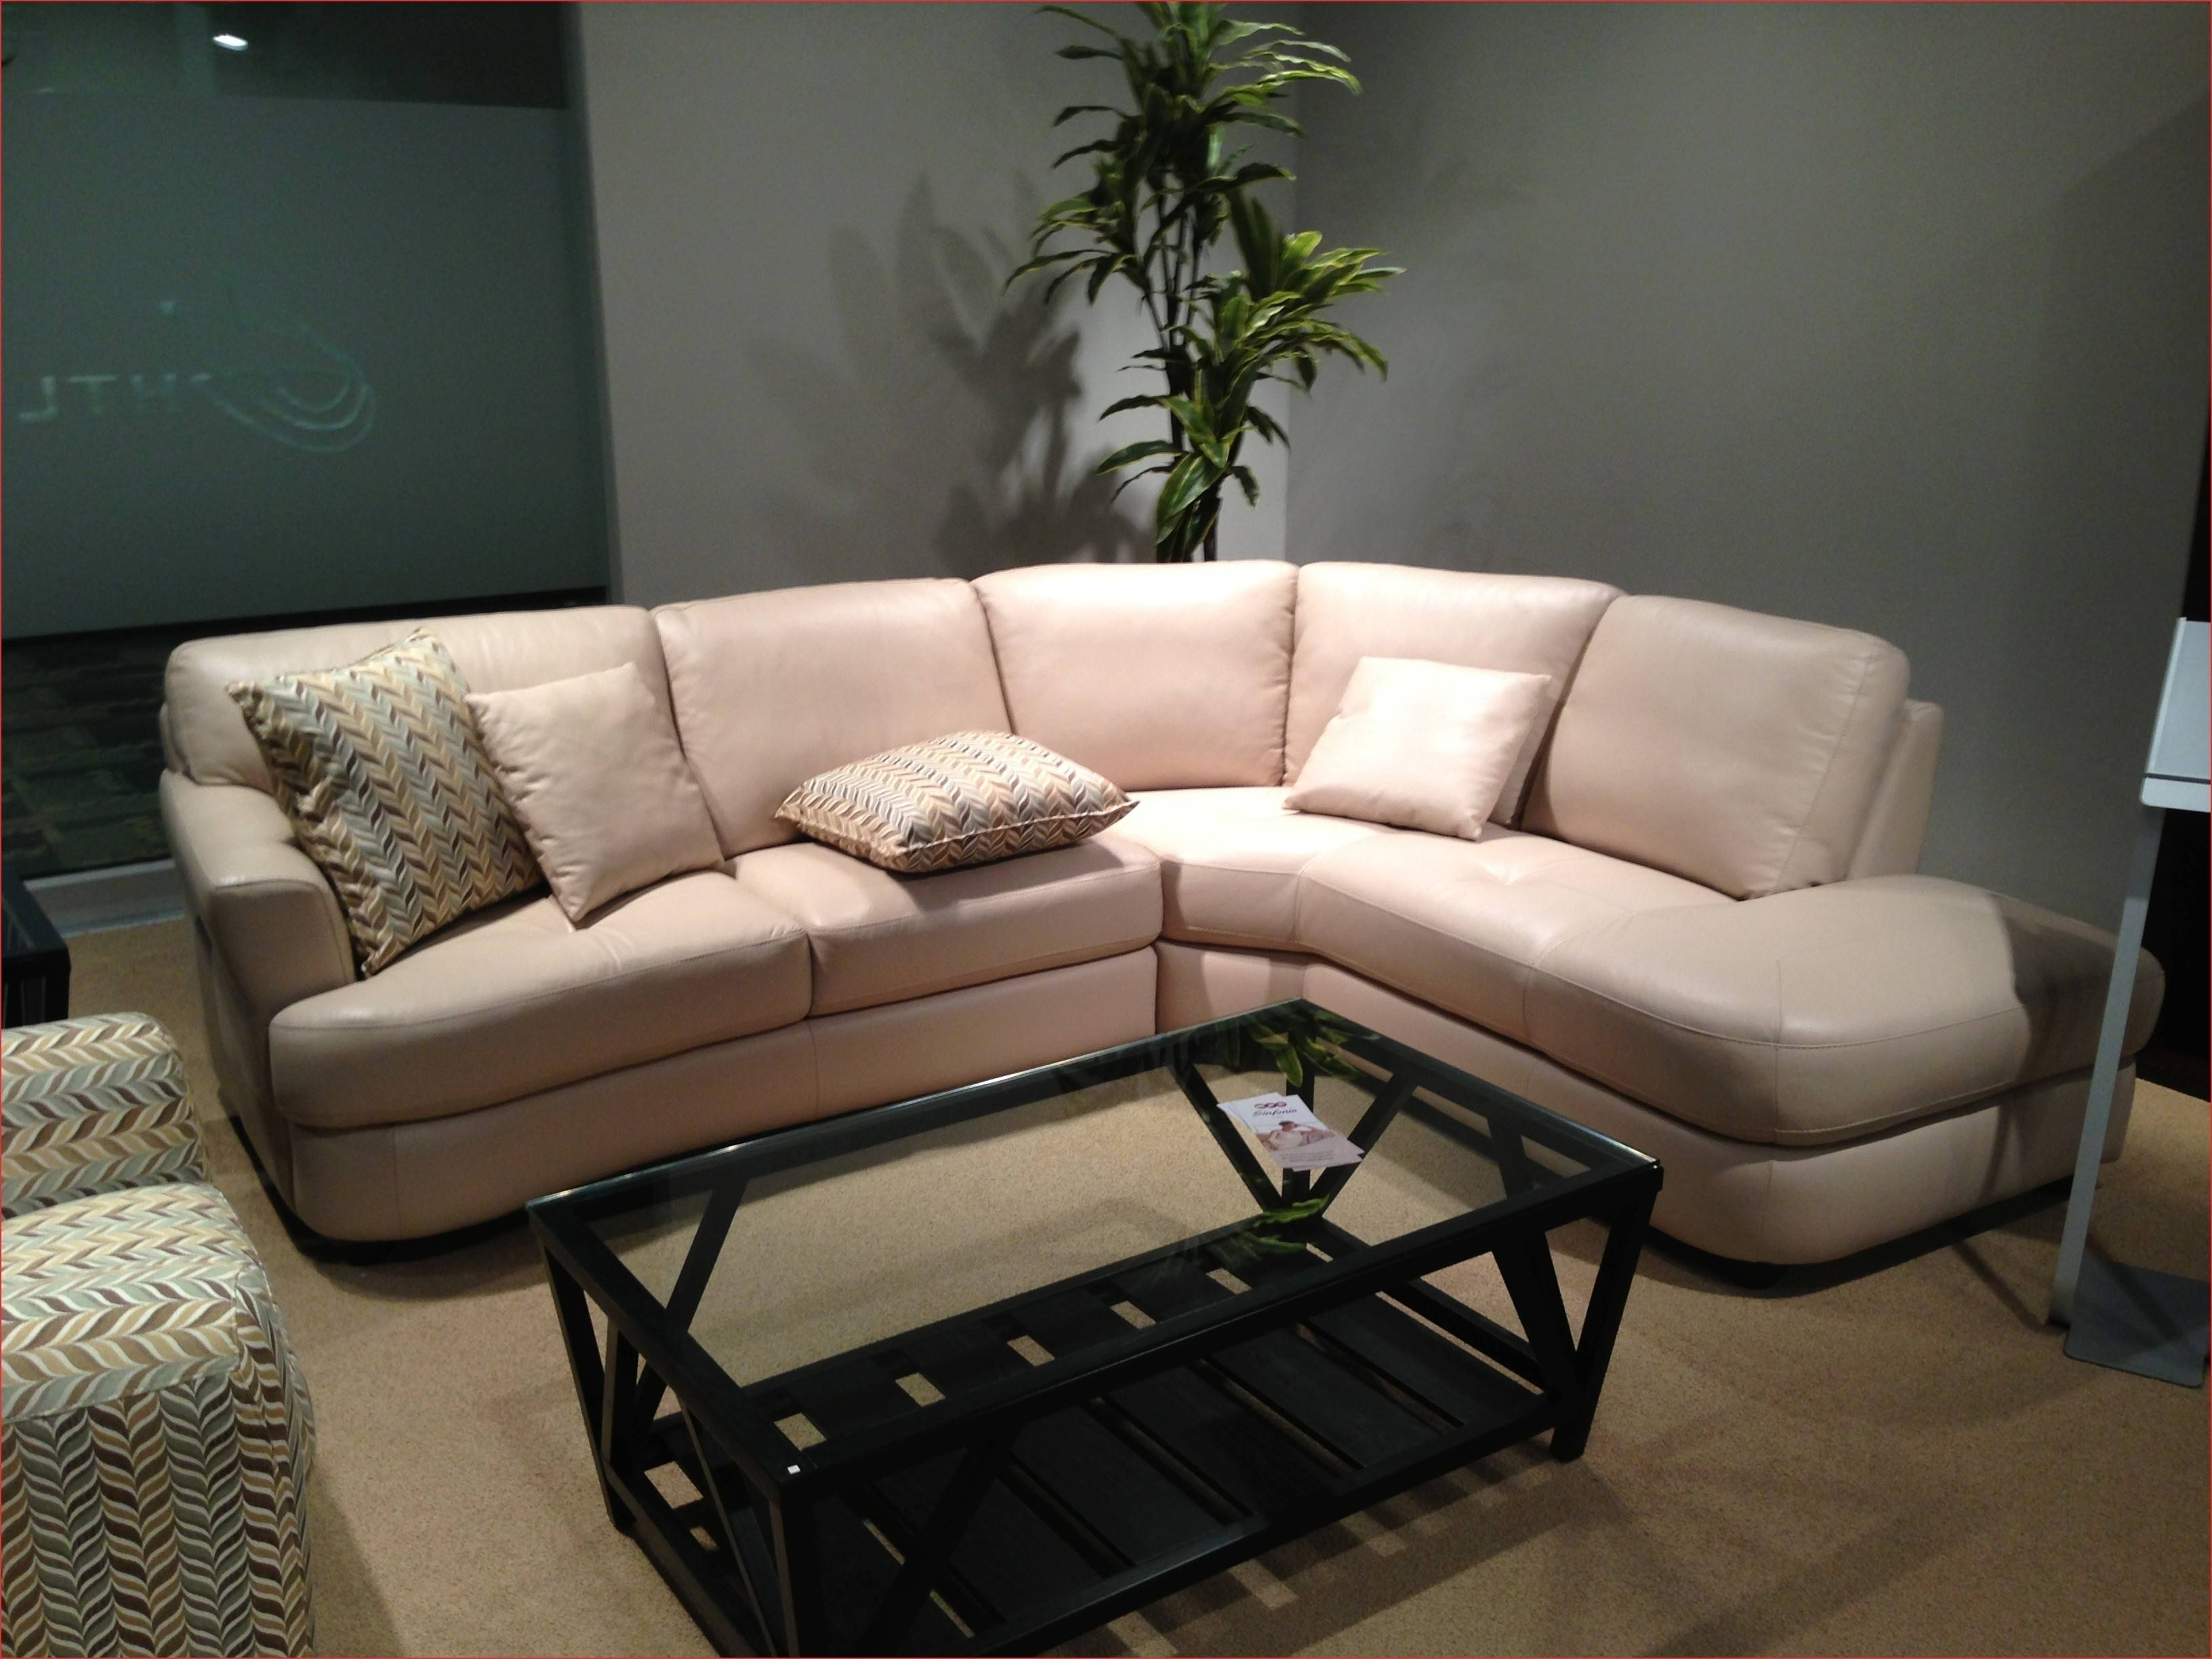 2019 Photos Sectional Sofas Portland Oregon – Mediasupload Intended For Portland Oregon Sectional Sofas (View 1 of 20)